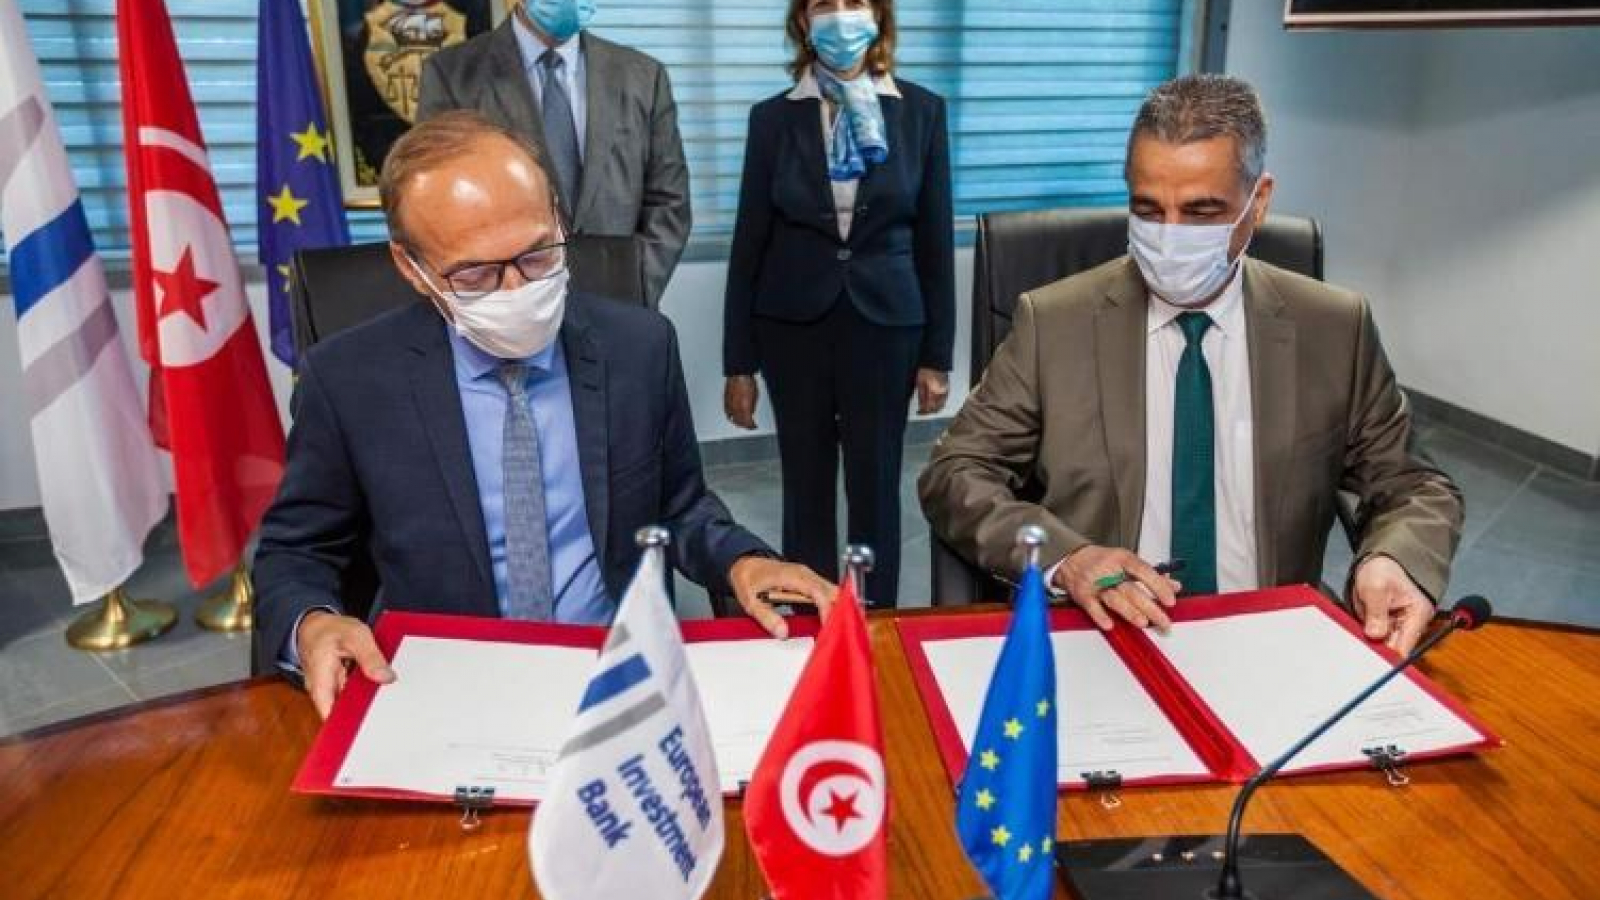 Tunisia: European Investment Bank provides fresh support to secure drinking water supply